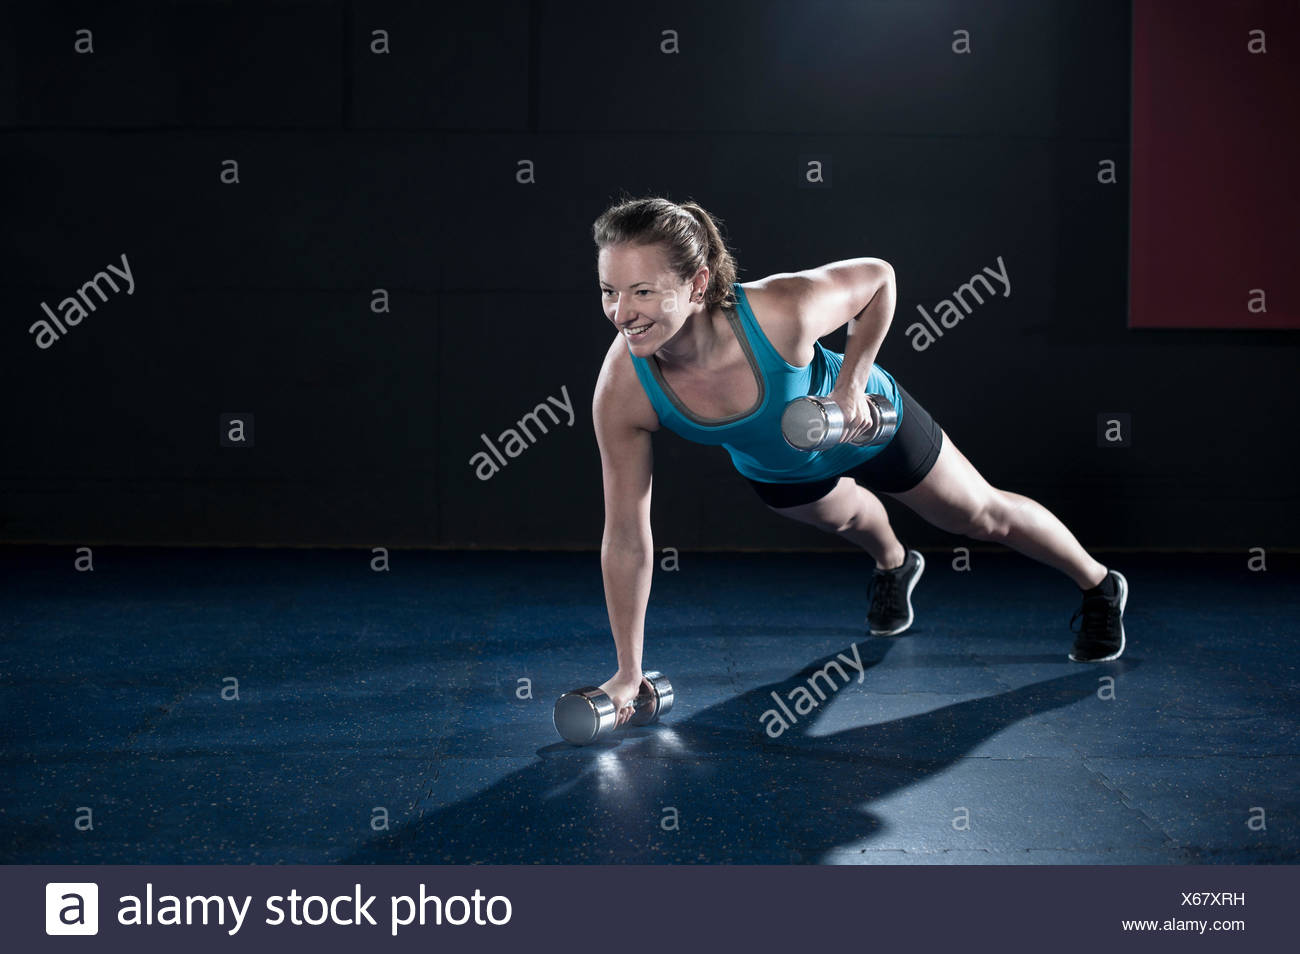 Sportive young woman doing exercise with dumbbell in the gym, Bavaria, Germany - Stock Image